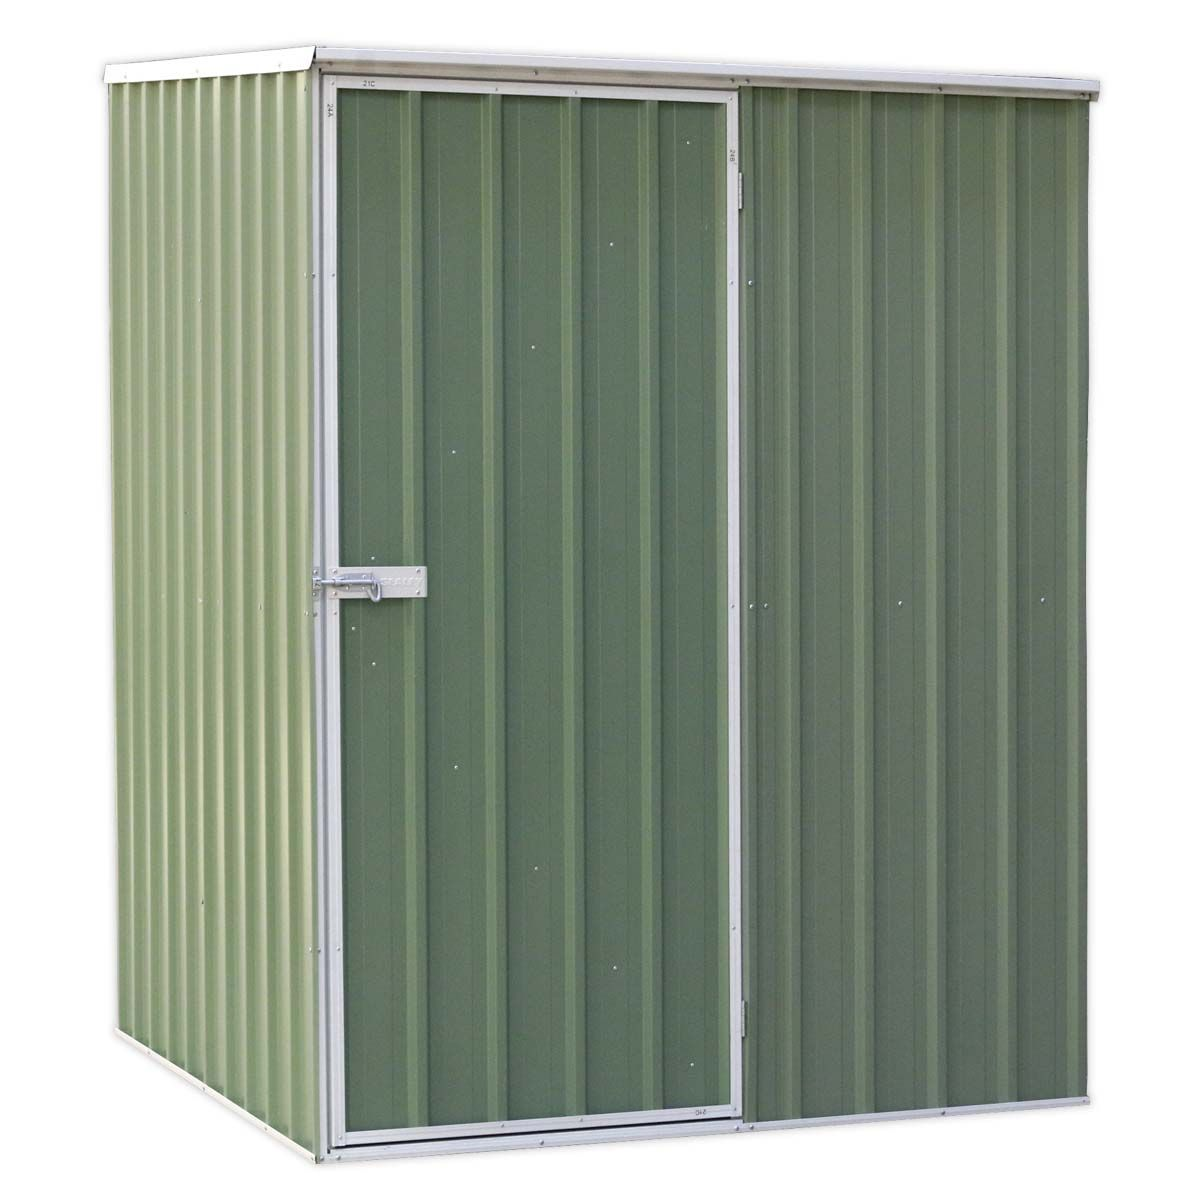 Sealey Galvanized Steel Shed Green 1.51 x 1.51 x 2m